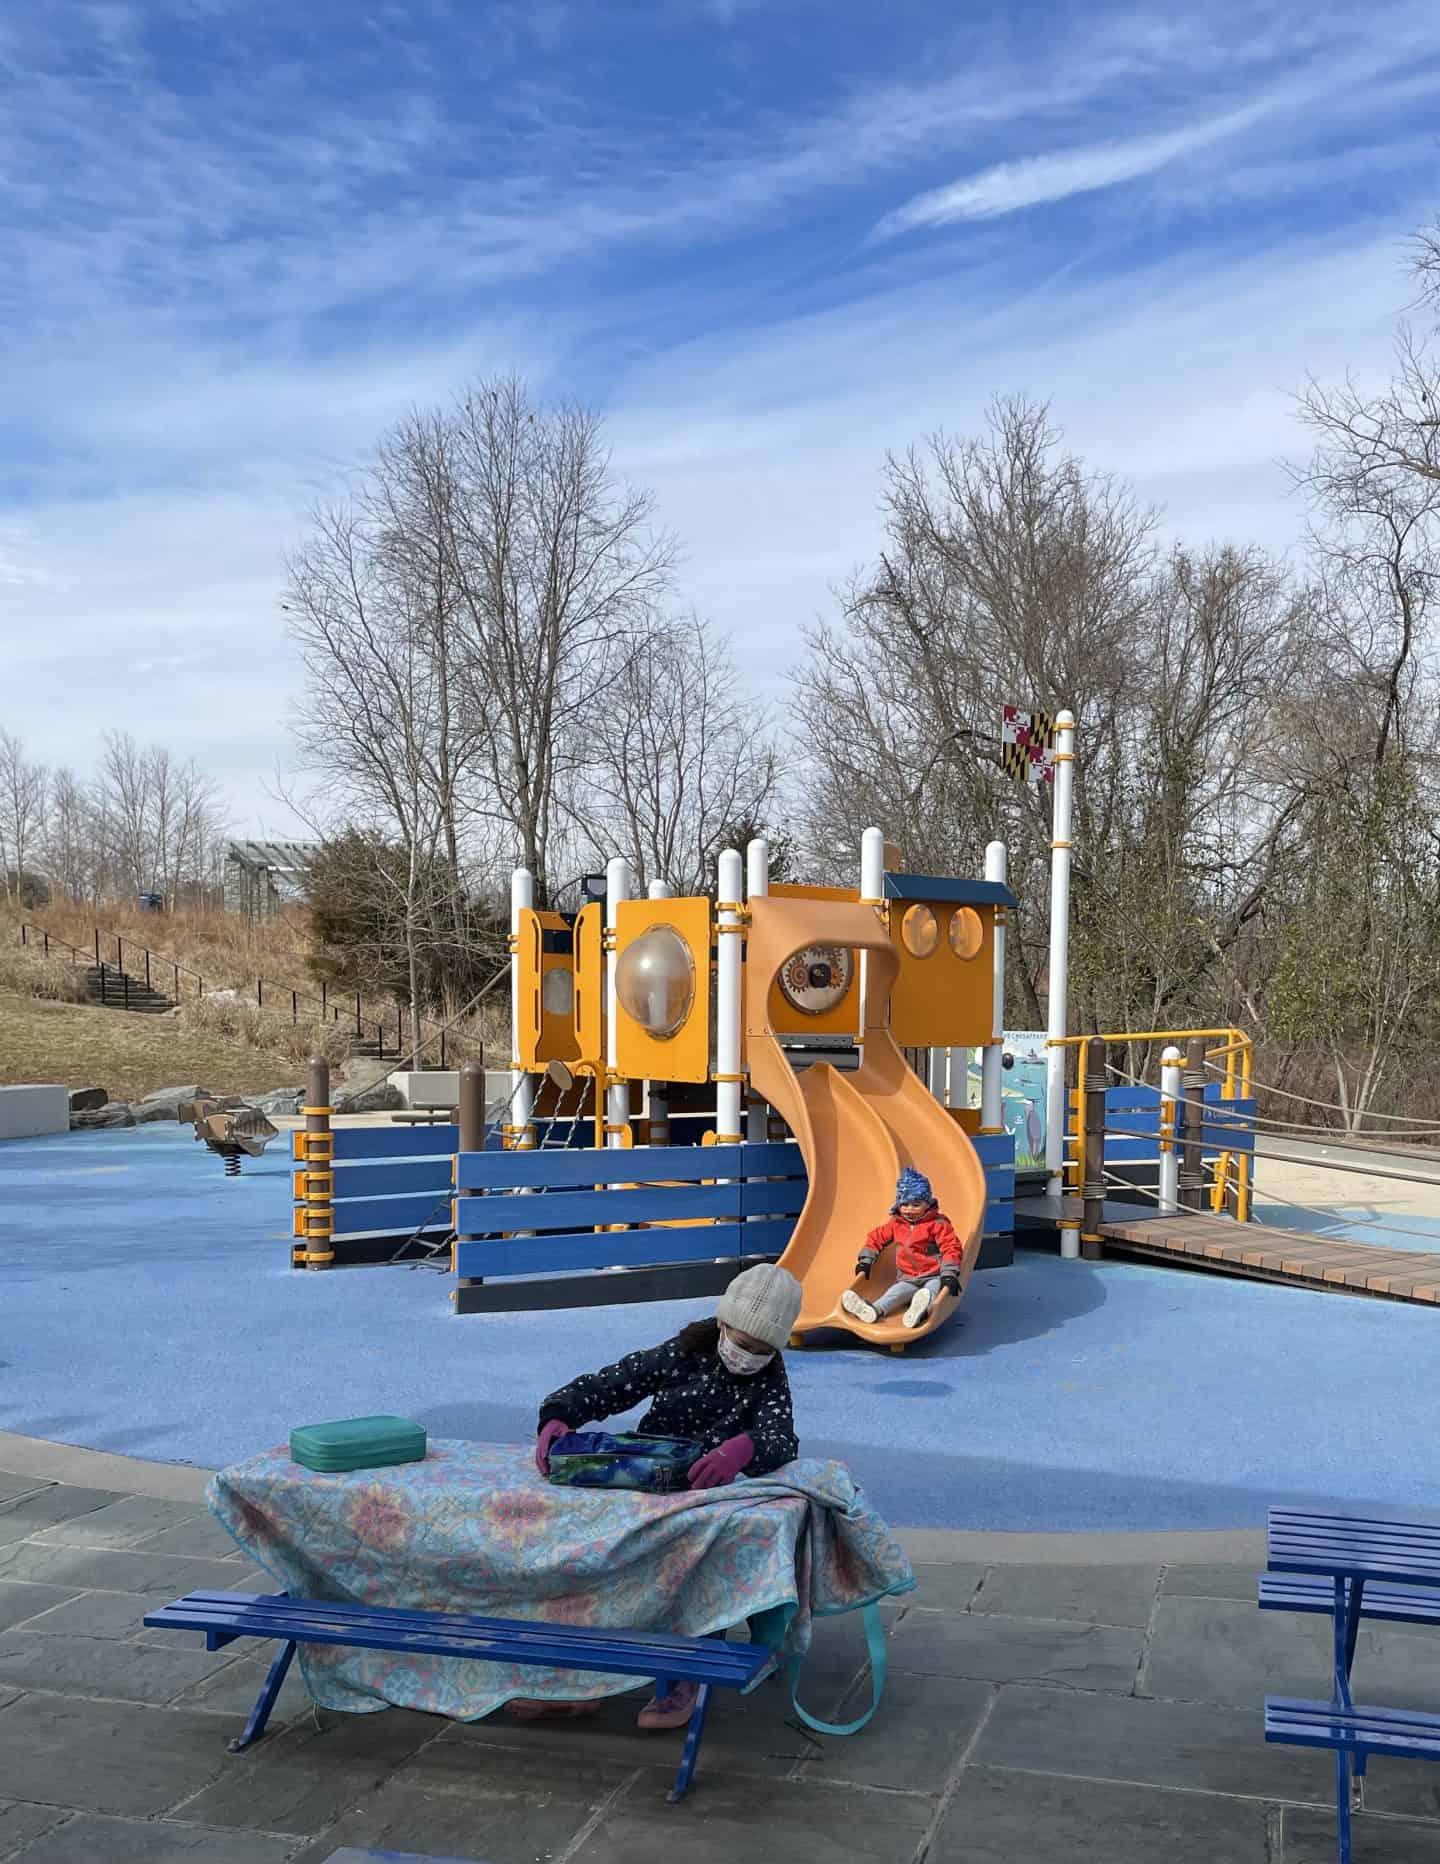 Best Playgrounds in Maryland Greenbriar